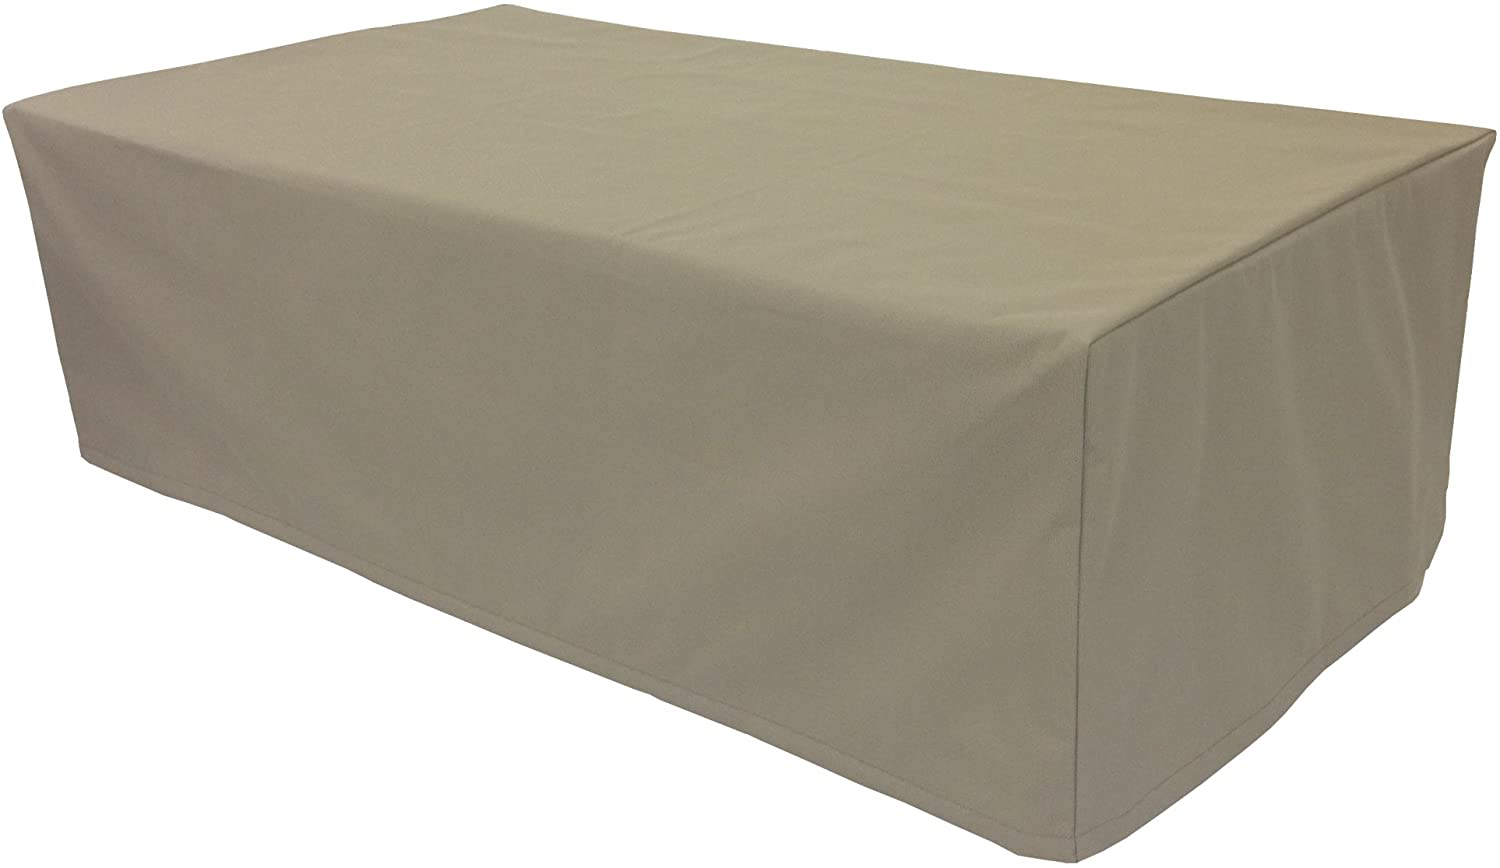 Easy Way Products Furniture Large Rectangular Ottoman Cover